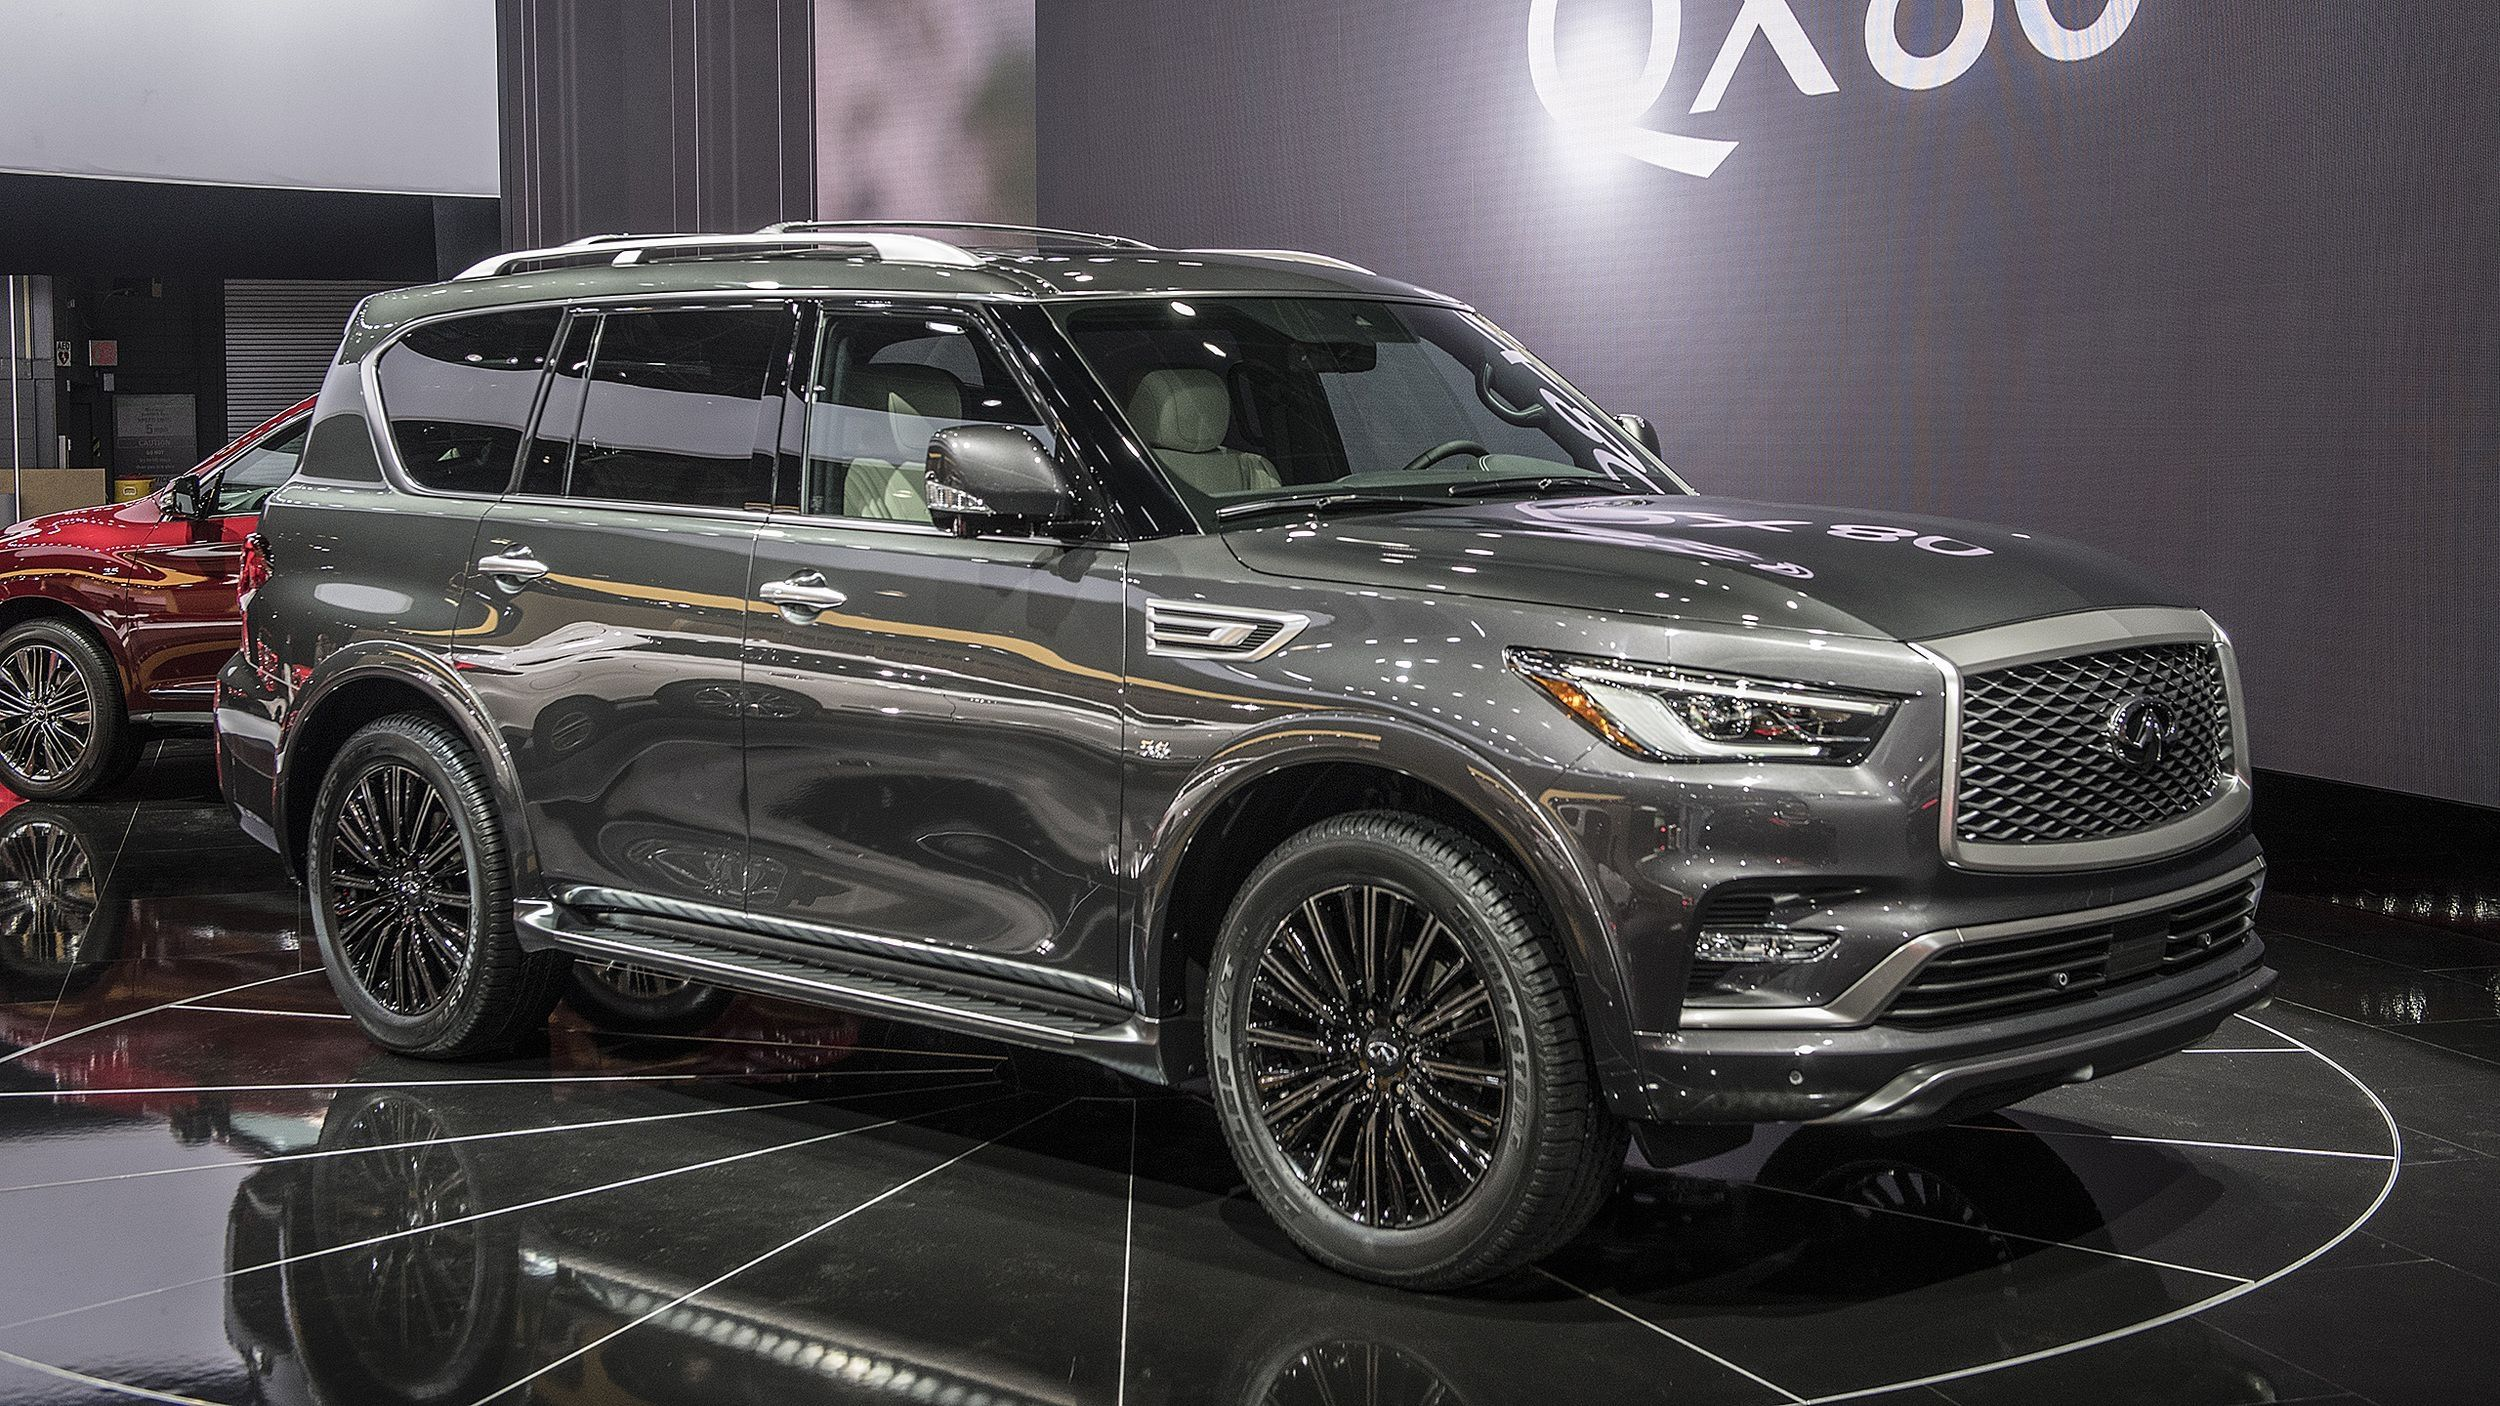 Best 2019 Infiniti Qx80 Suv Spesification Infiniti Suv Reviews Infiniti Qx 80